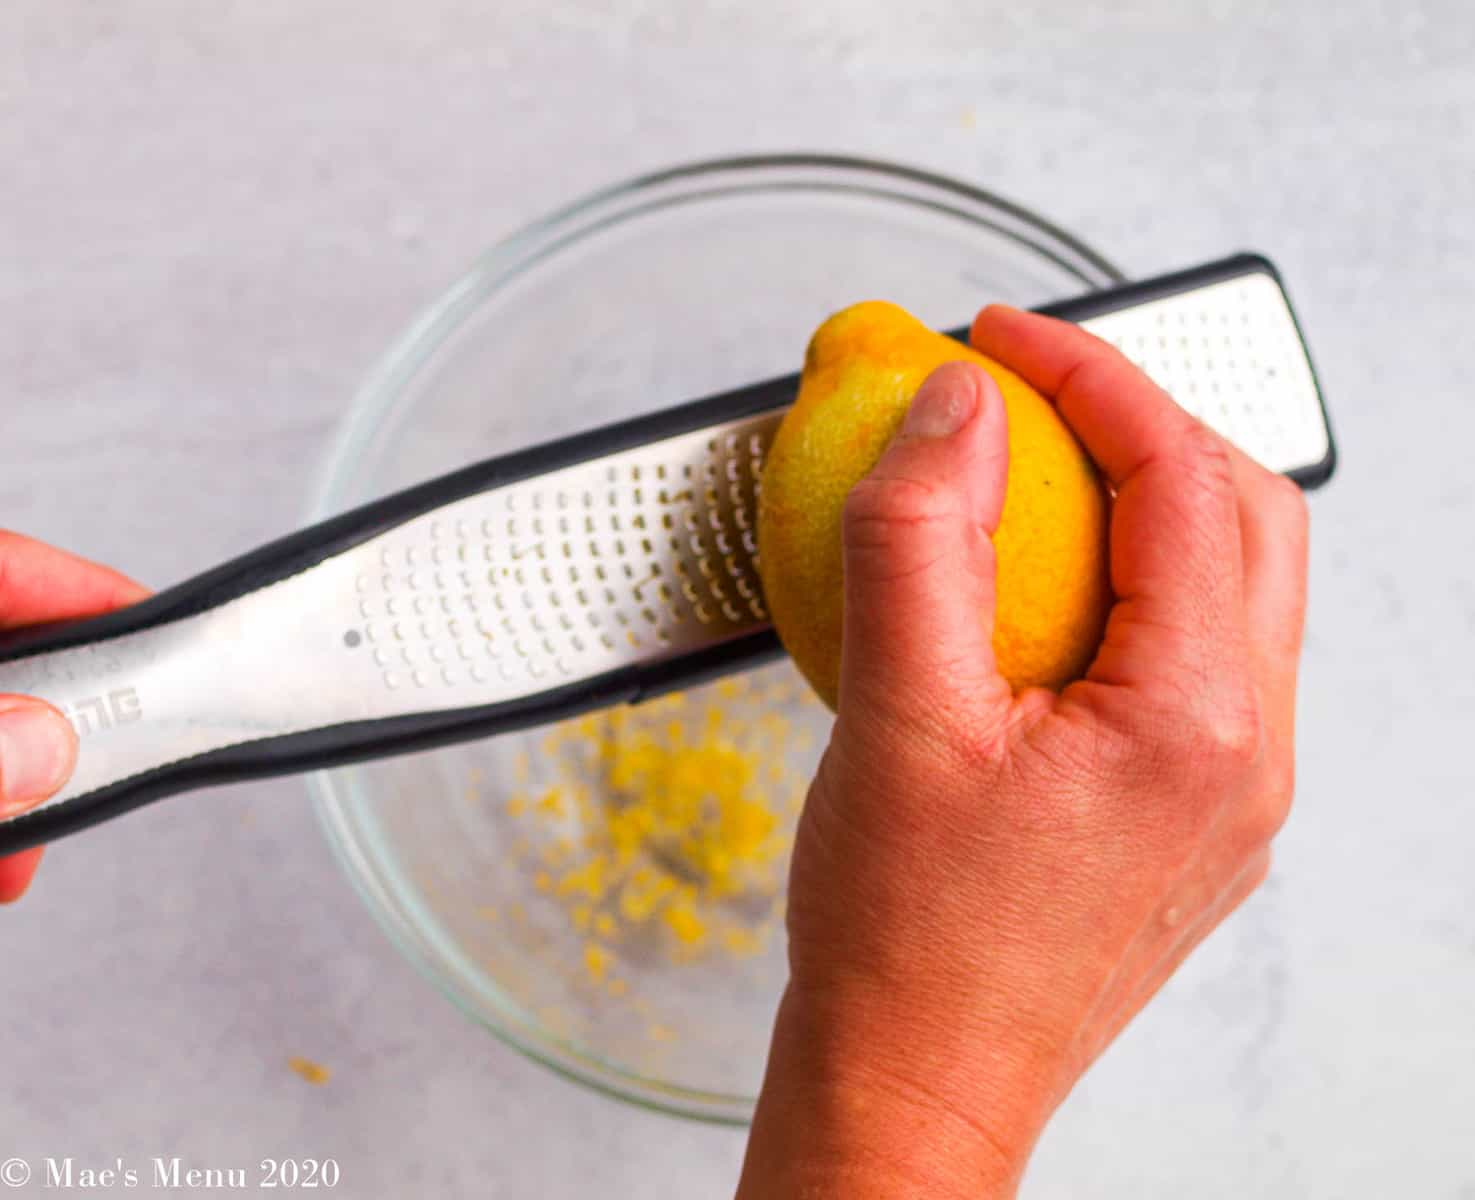 Zesting a lemon on a microplane zester over a clear bowl.